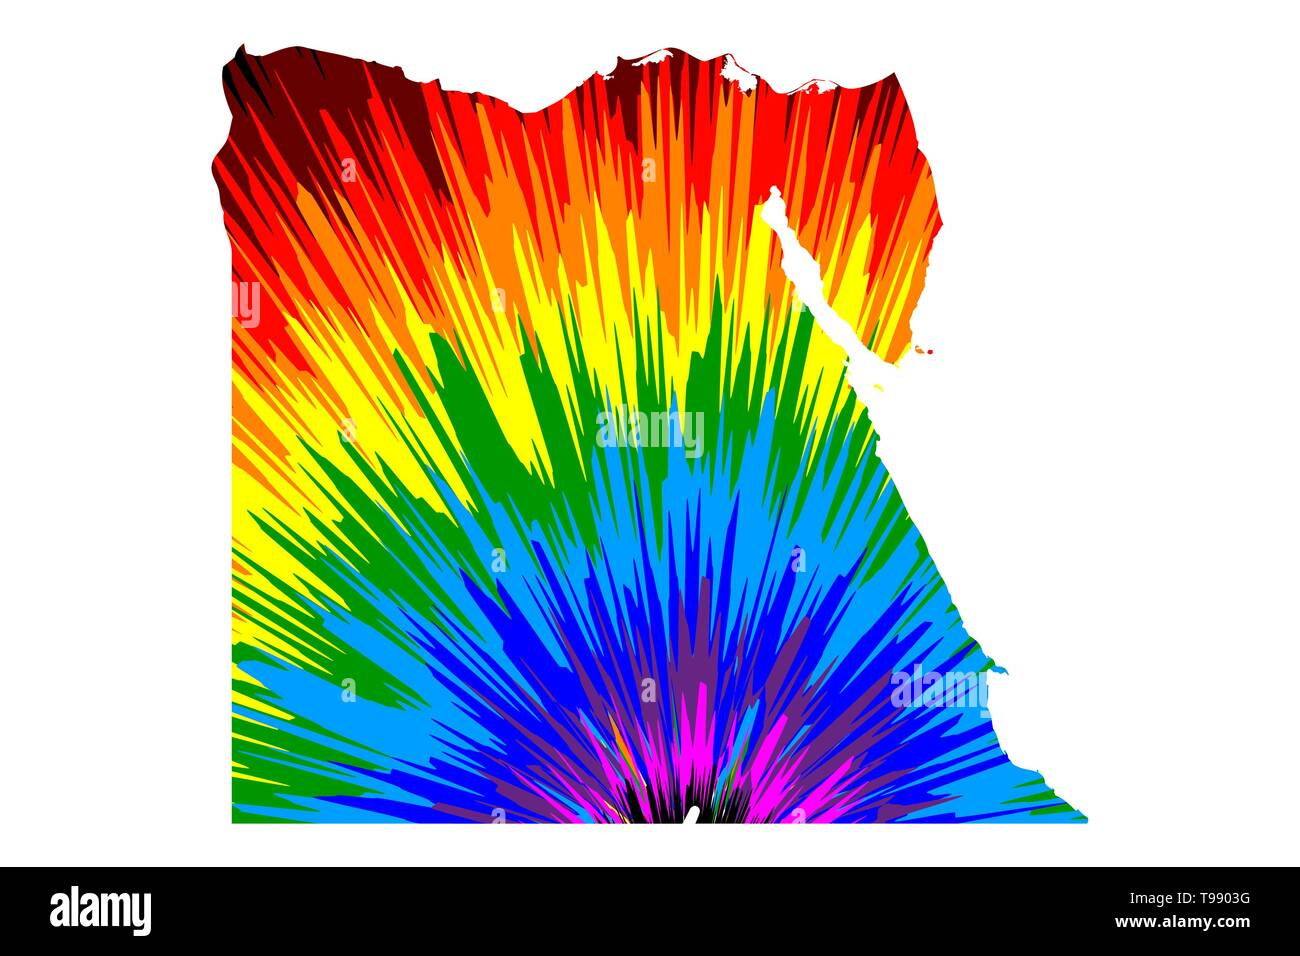 Egypt - map is designed rainbow abstract colorful pattern, Arab Republic of Egypt map made of color explosion, - Stock Image